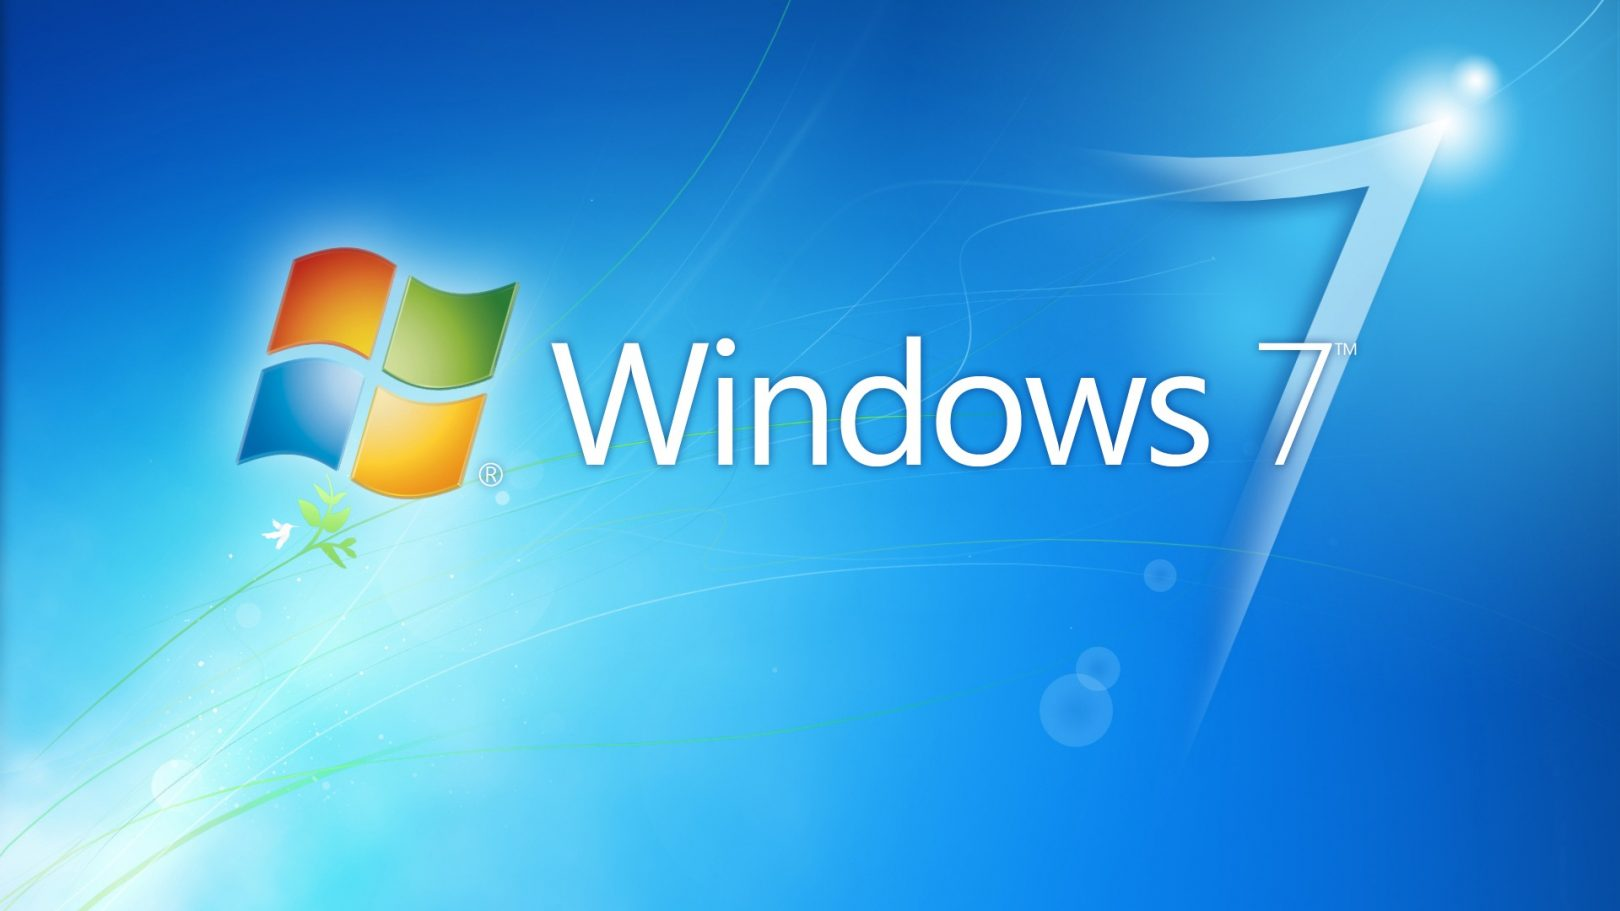 Why You Should Install 64-bit Version of Windows on Your Windows 7 or 10 with 64-bit Operating System